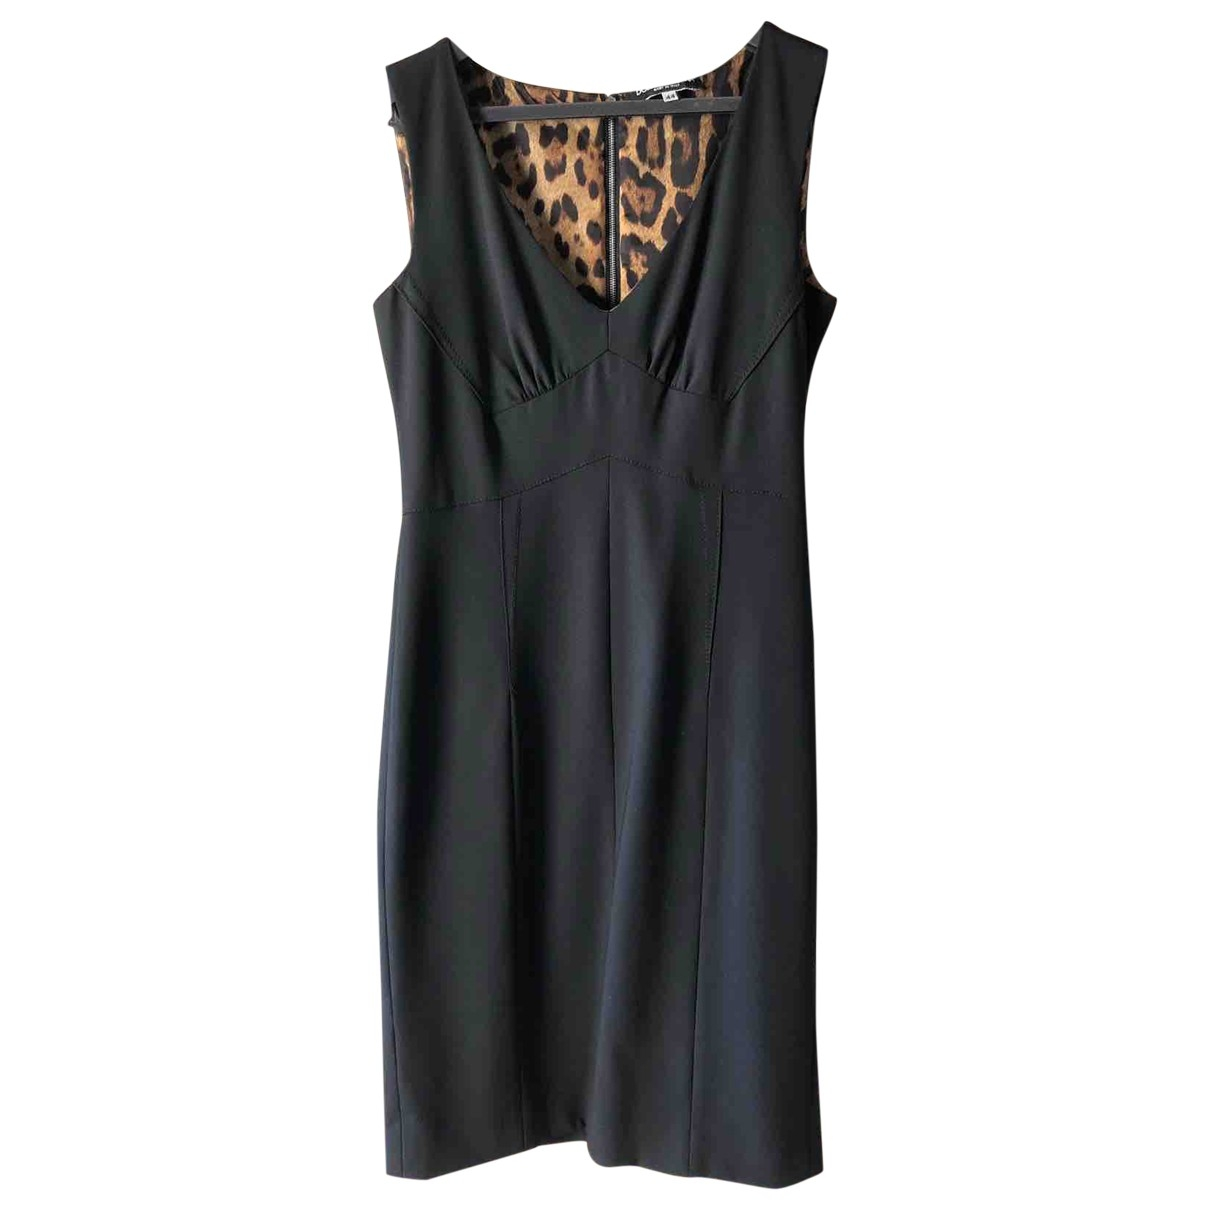 Dolce & Gabbana \N Black Wool dress for Women 44 IT